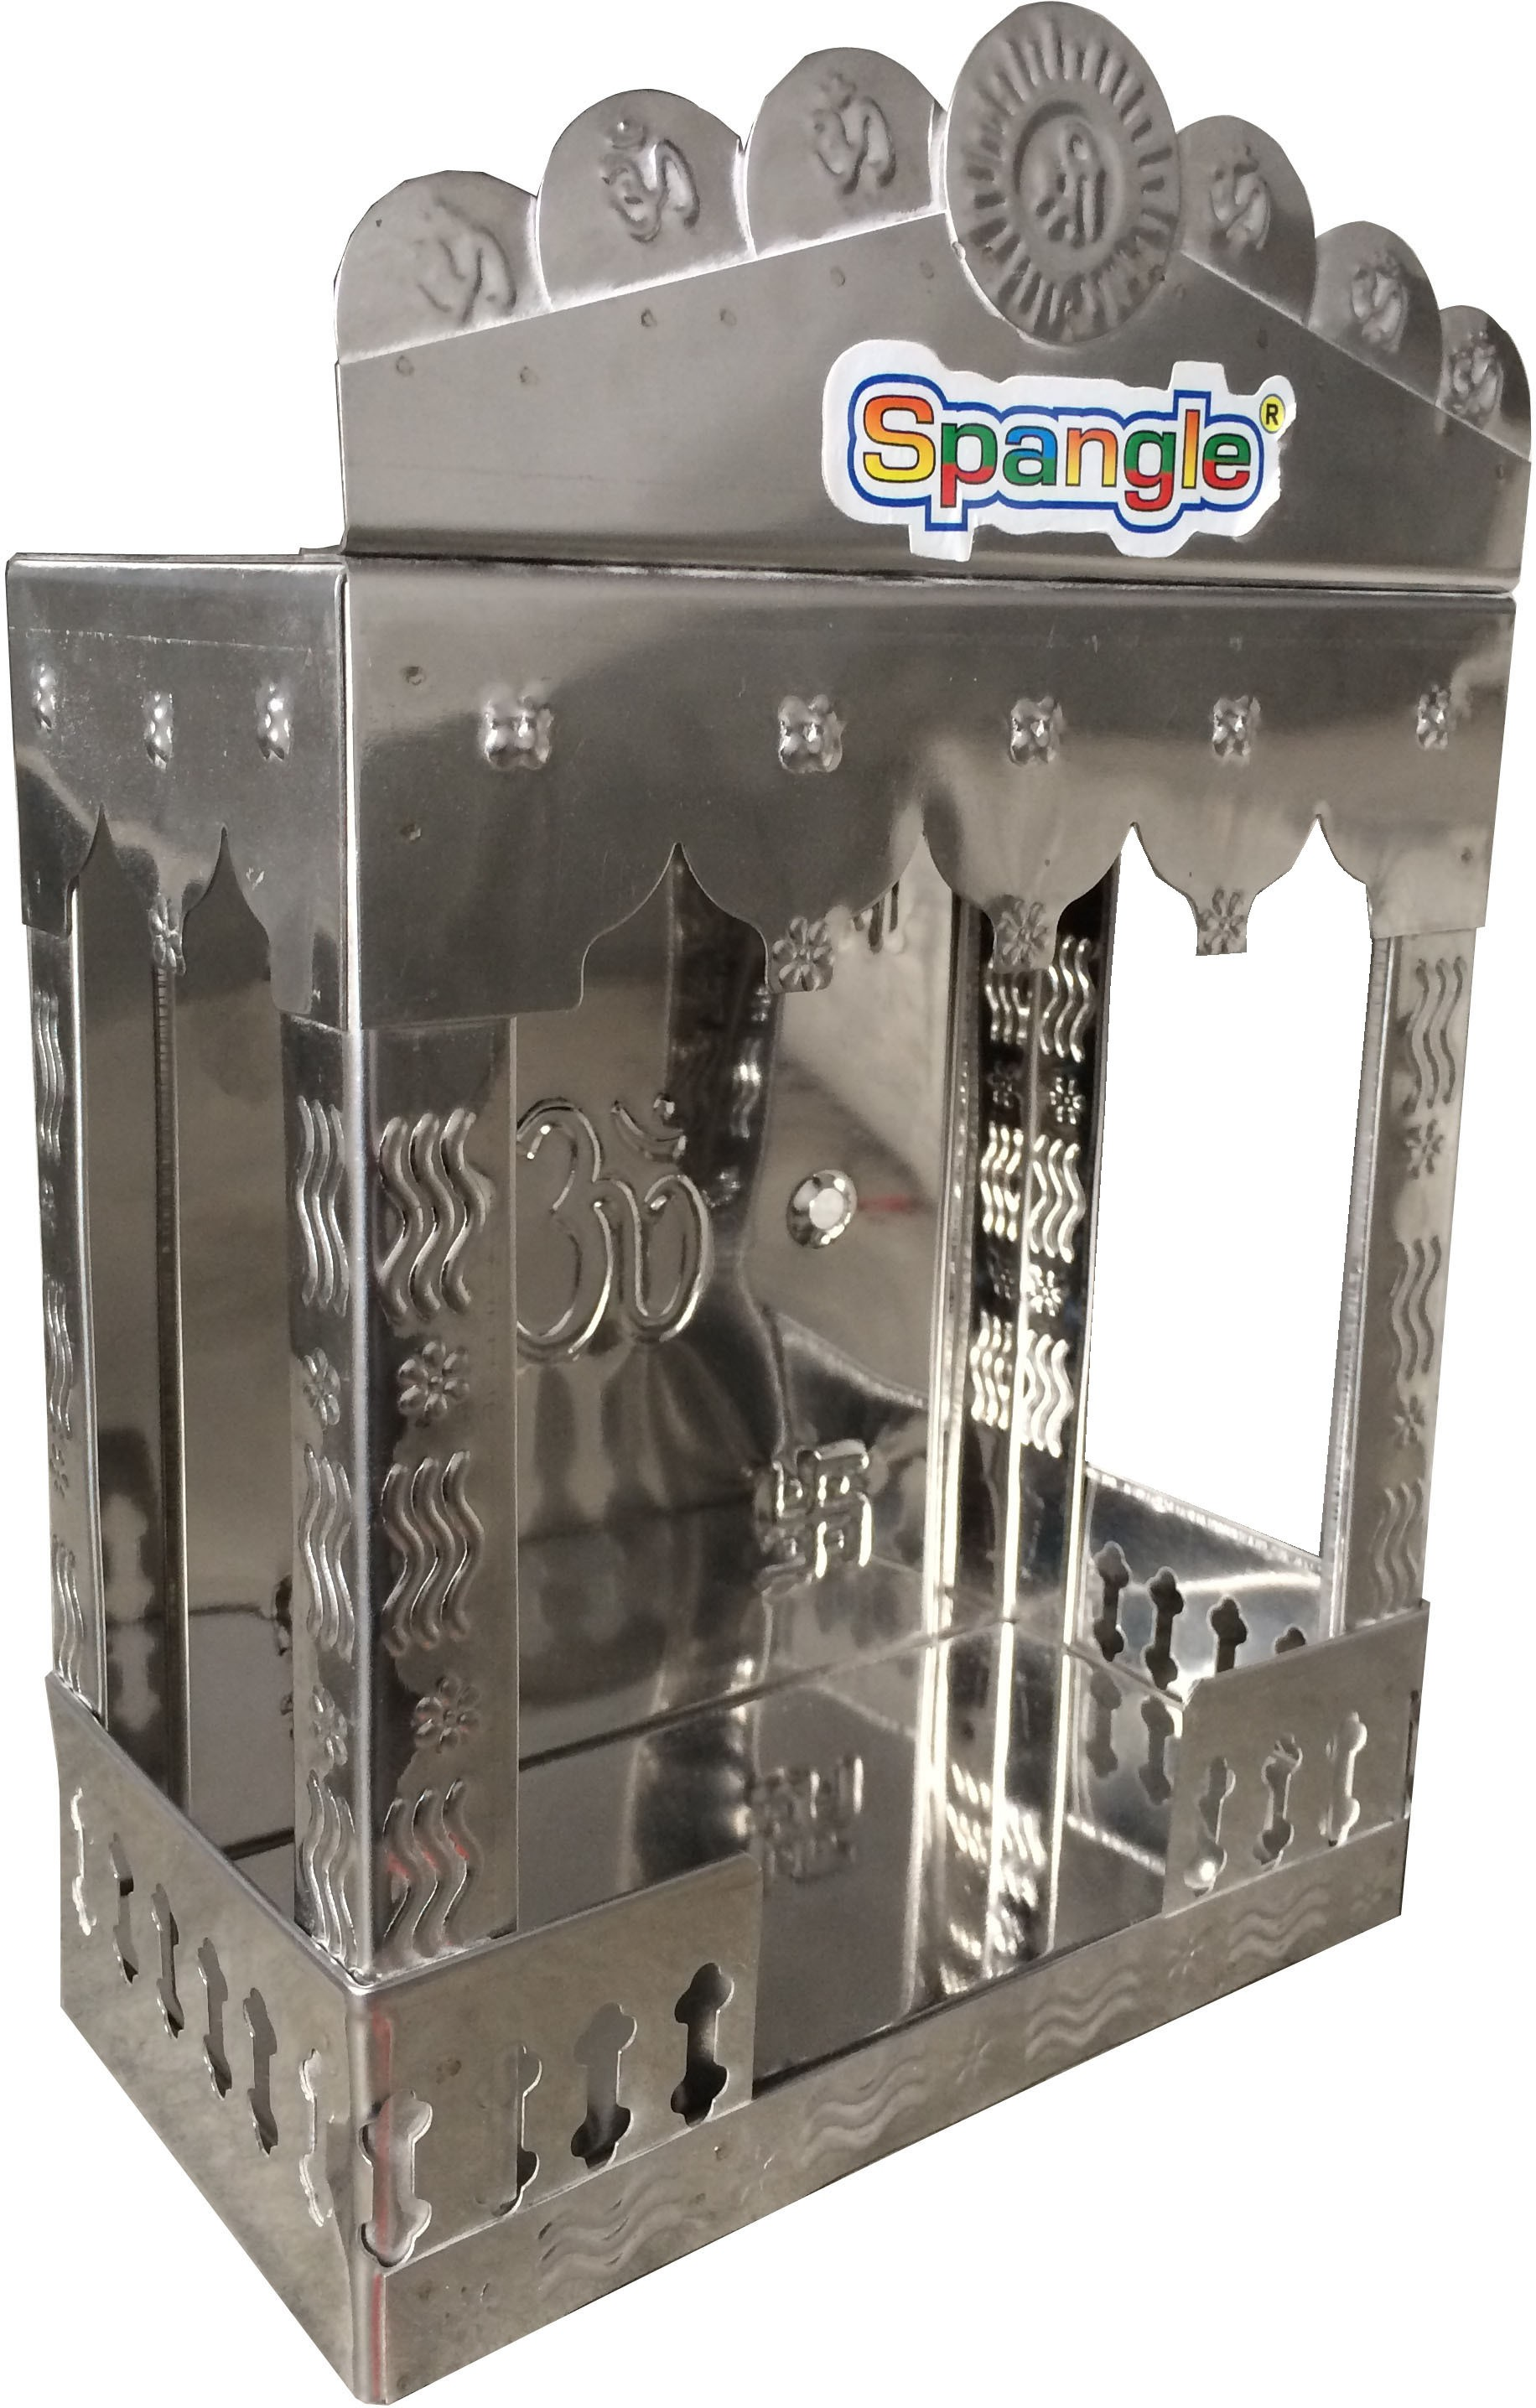 View Spangle Stainless Steel Home Temple(Height: 32.5 cm) Furniture (Spangle)